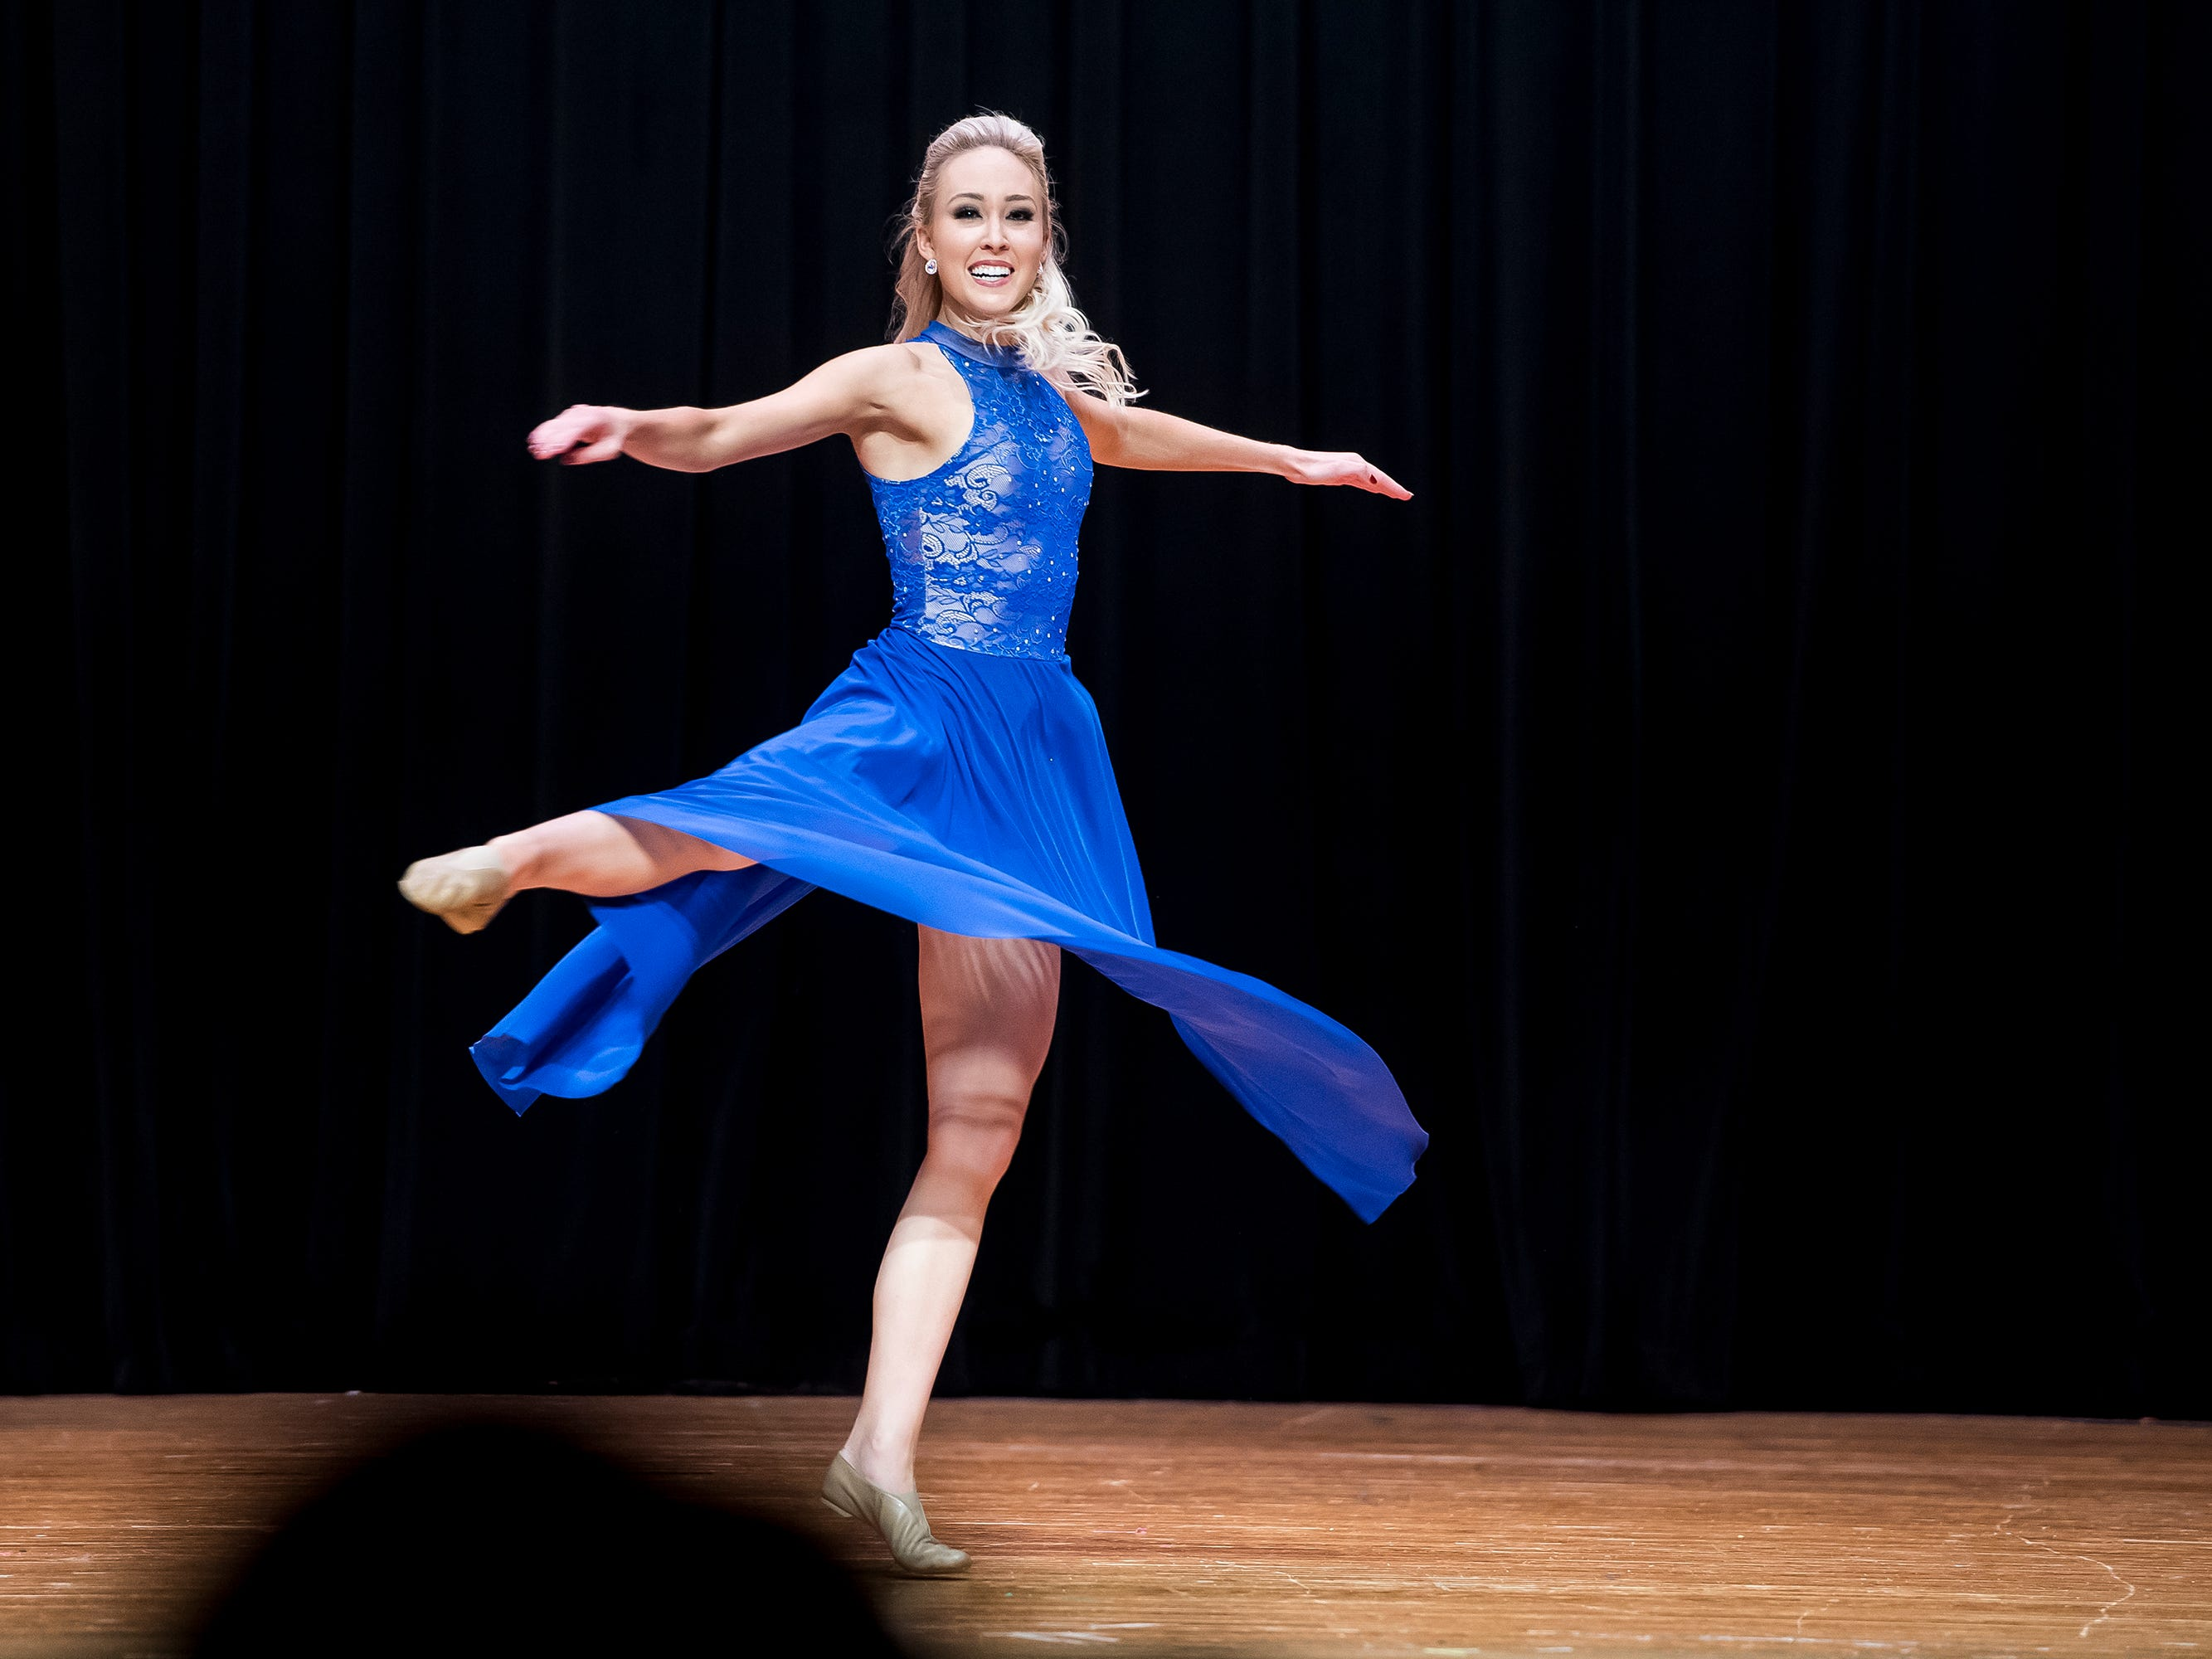 Miss Pennsylvania, Kayla Repasky, dances during a special talent presentation at the start of the 50th Miss Hanover Area pageant on Monday, October 22, 2018.